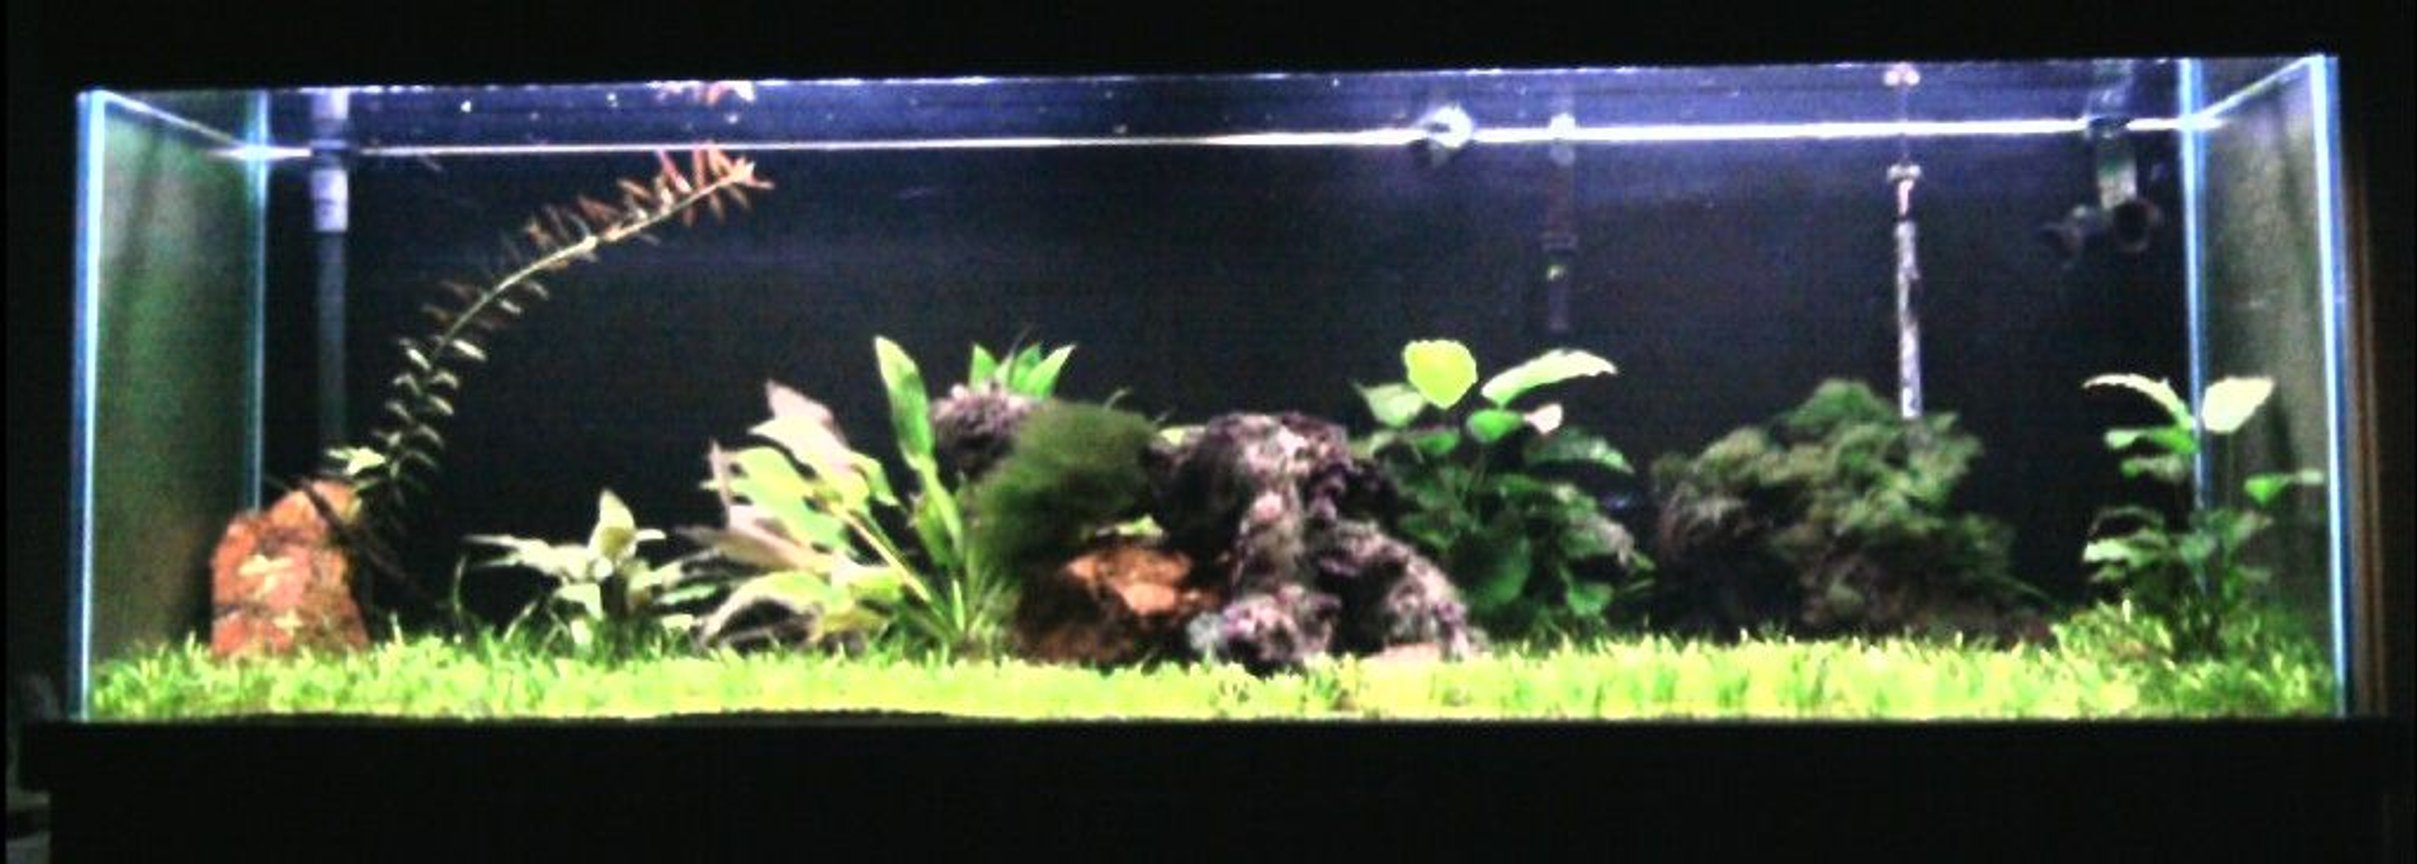 125 gallons planted tank (mostly live plants and fish) - 125gal. 9-month old planted tank